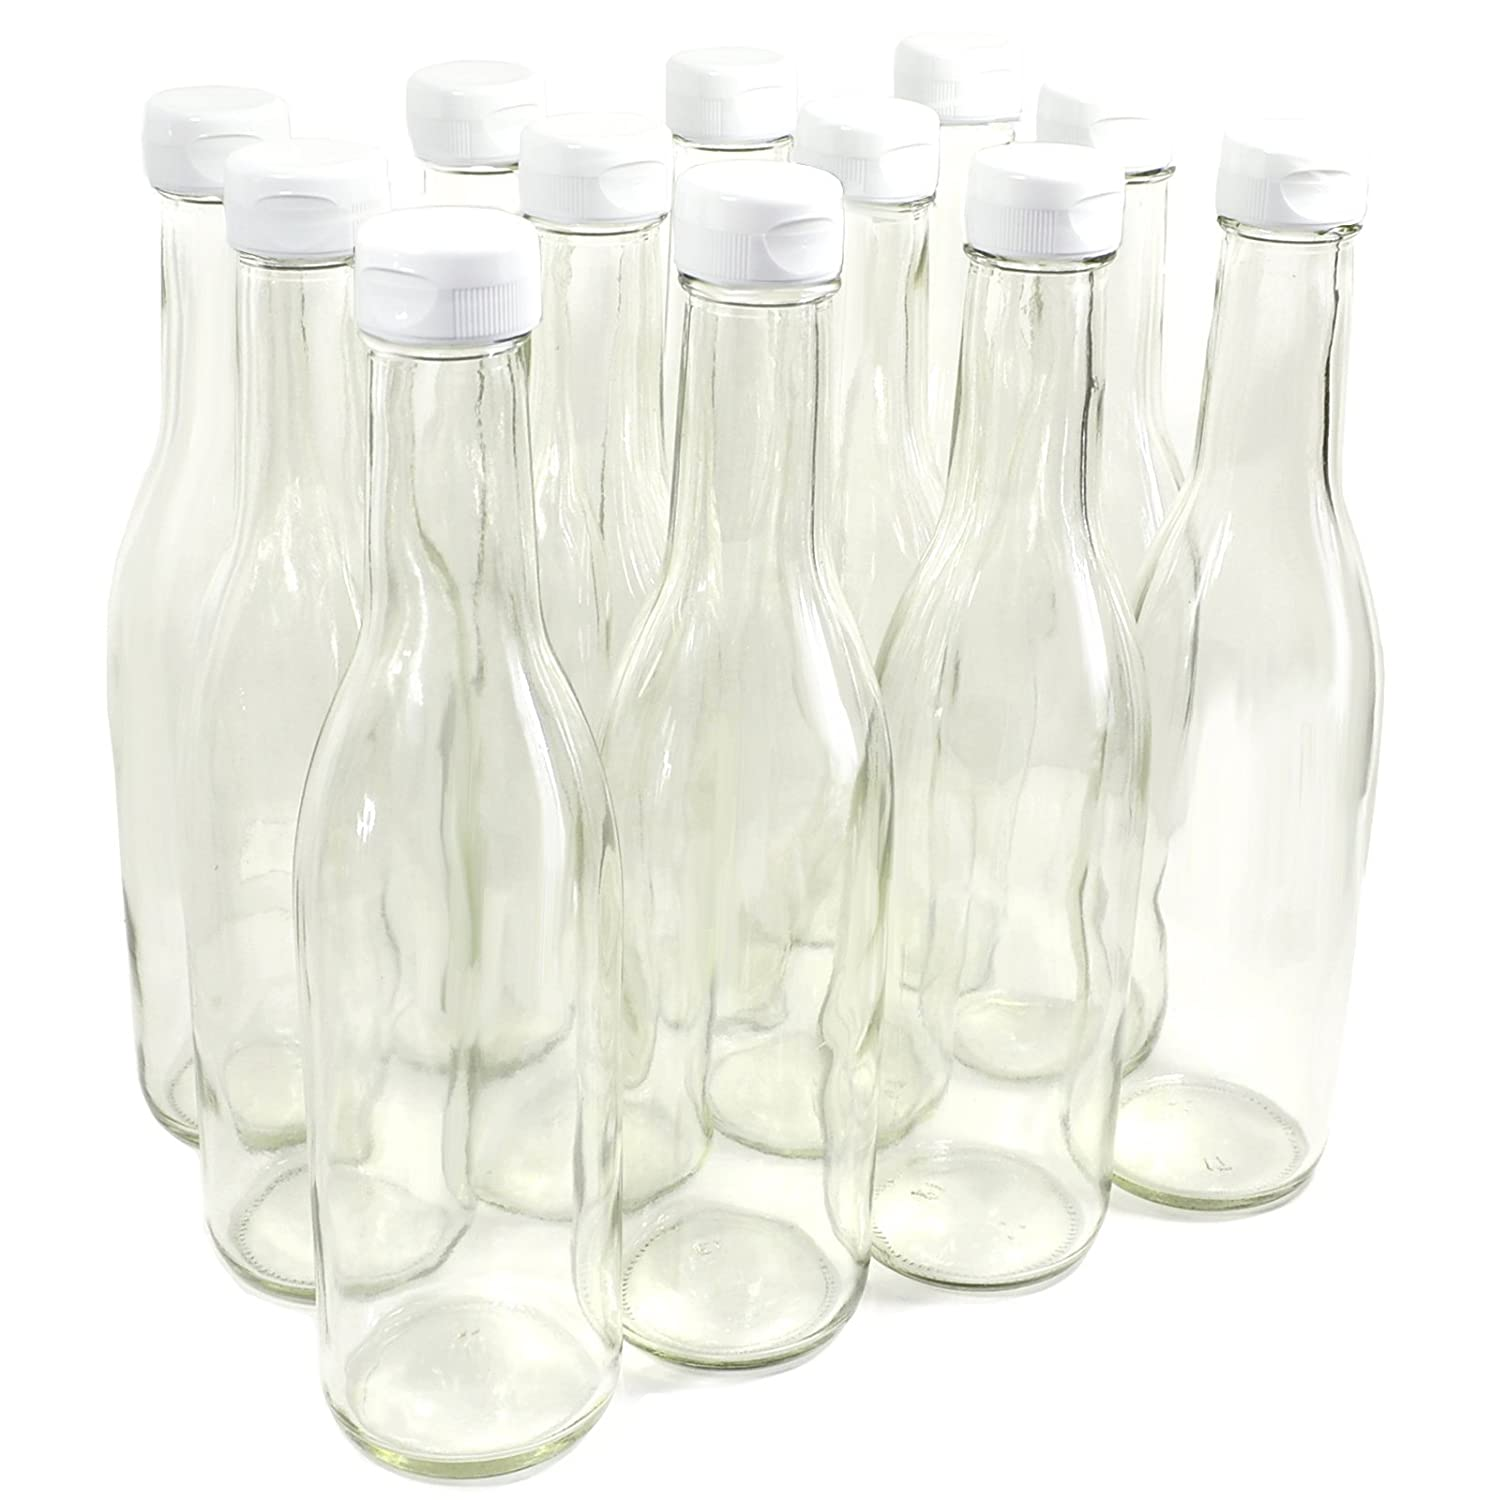 Clear Glass Woozy Bottles, 12 Oz - Pack of 6 COMINHKPR148518